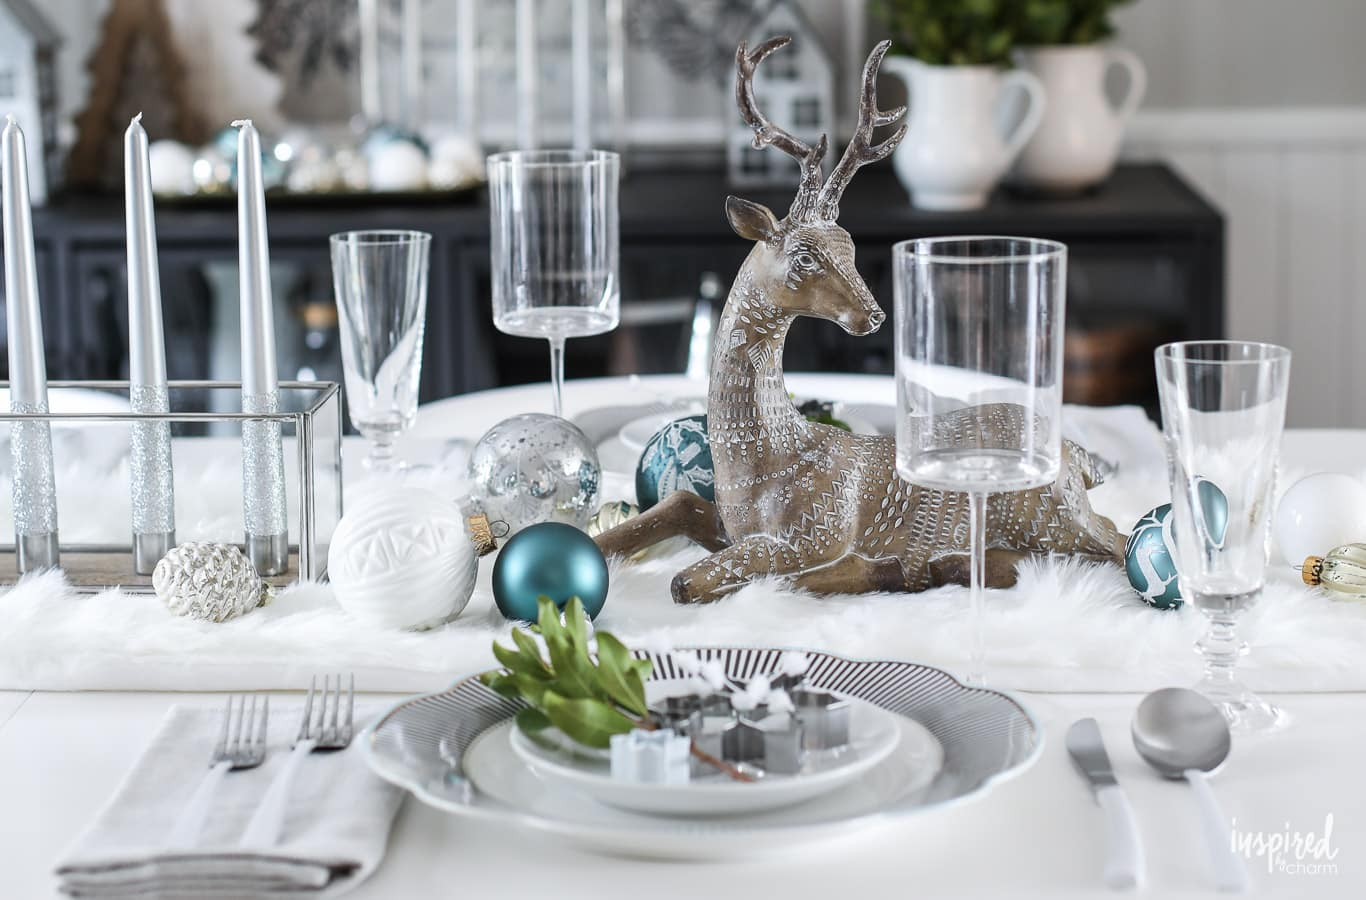 Table Decor And More Festive Christmas Table Decor Ideas Holiday Decorating Tips